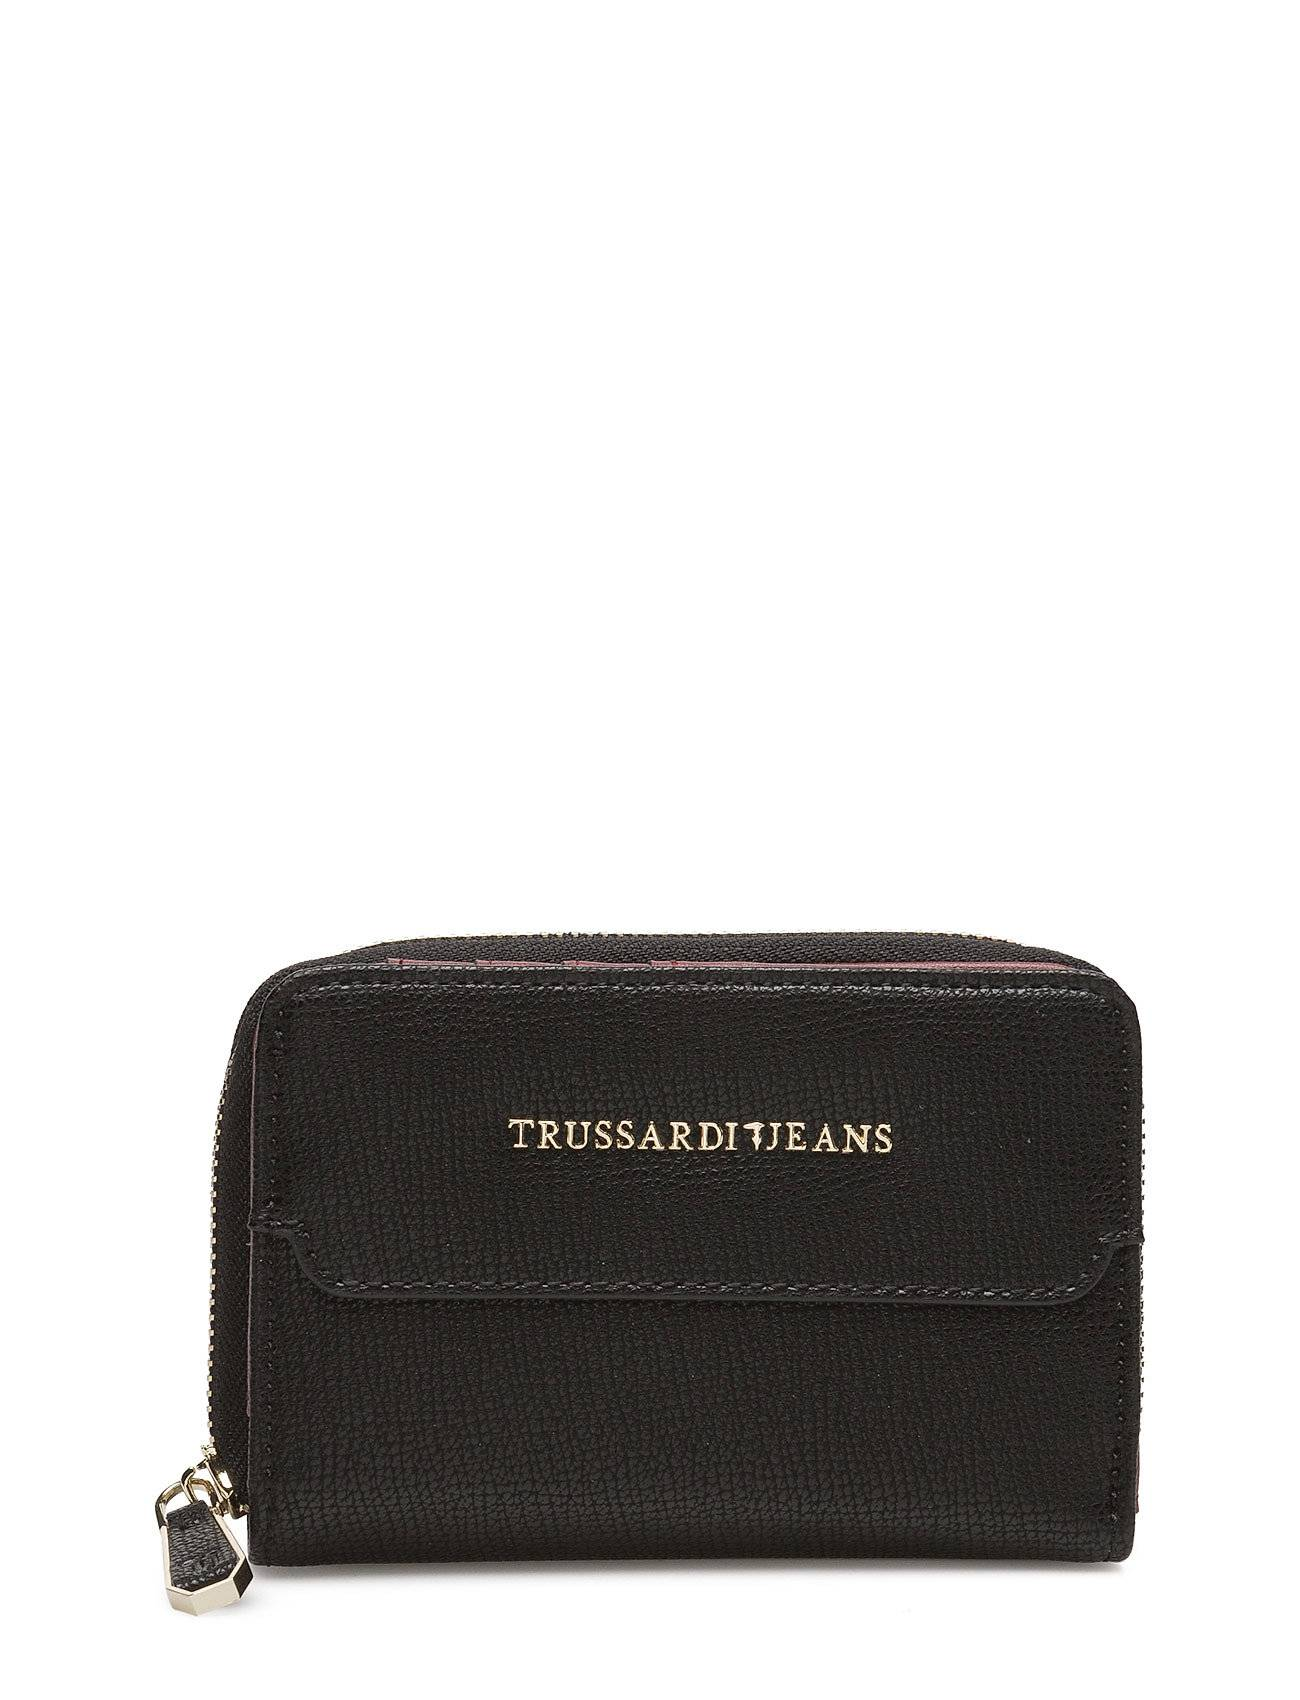 TRUSSARDI JEANS Vail Ecoleather Saffiano Wallet